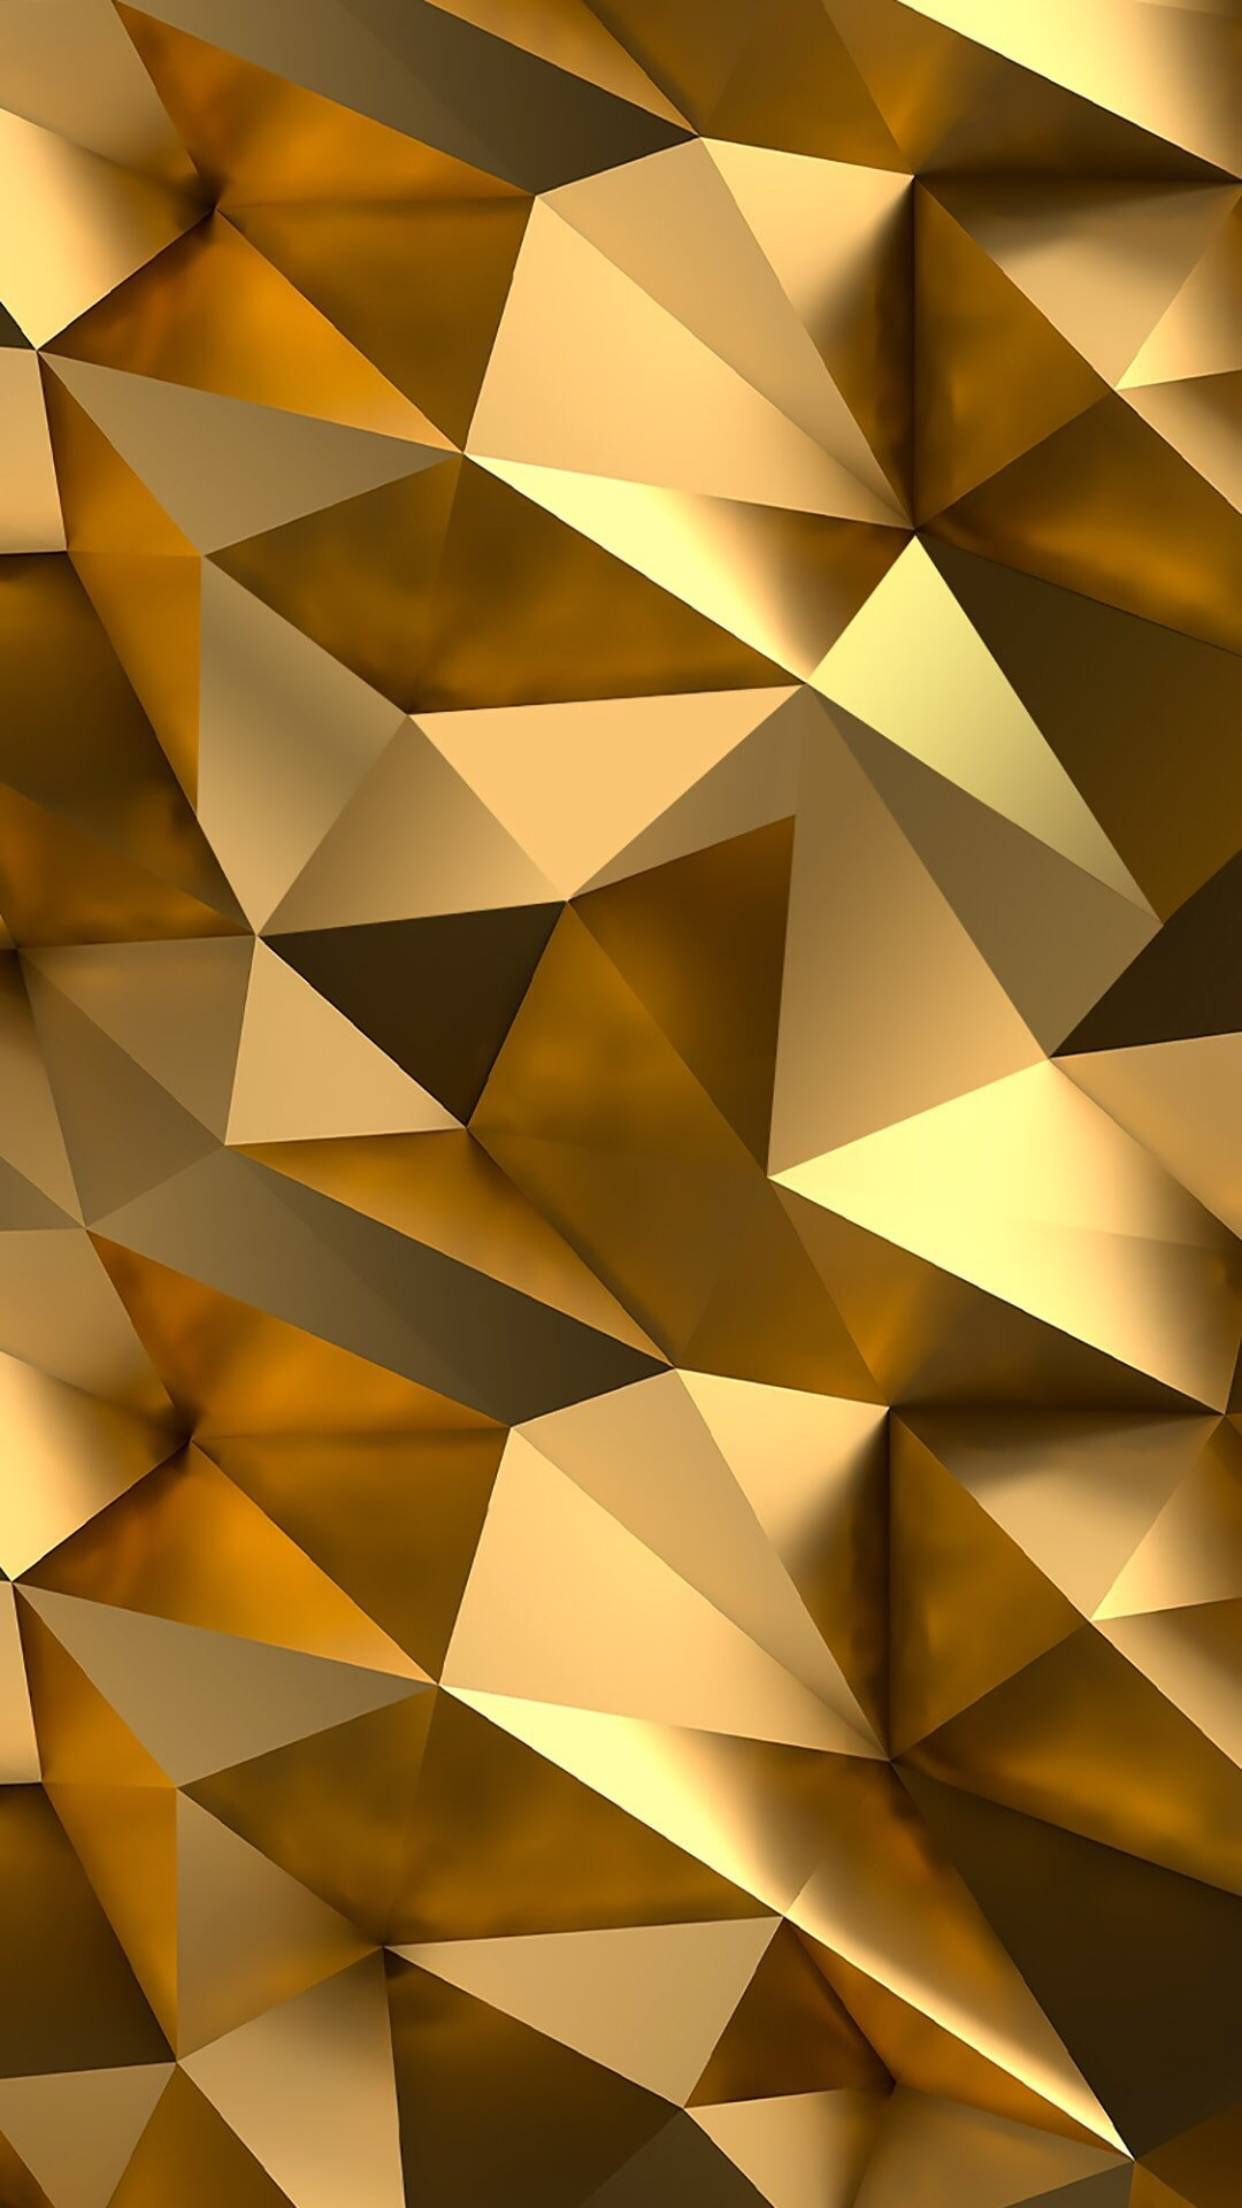 Incredible What Colour Goes With Gold Wallpaper Buildingdesign Homedesign Architecture Home Design Gold Wallpaper Pattern Wallpaper Hd Phone Wallpapers